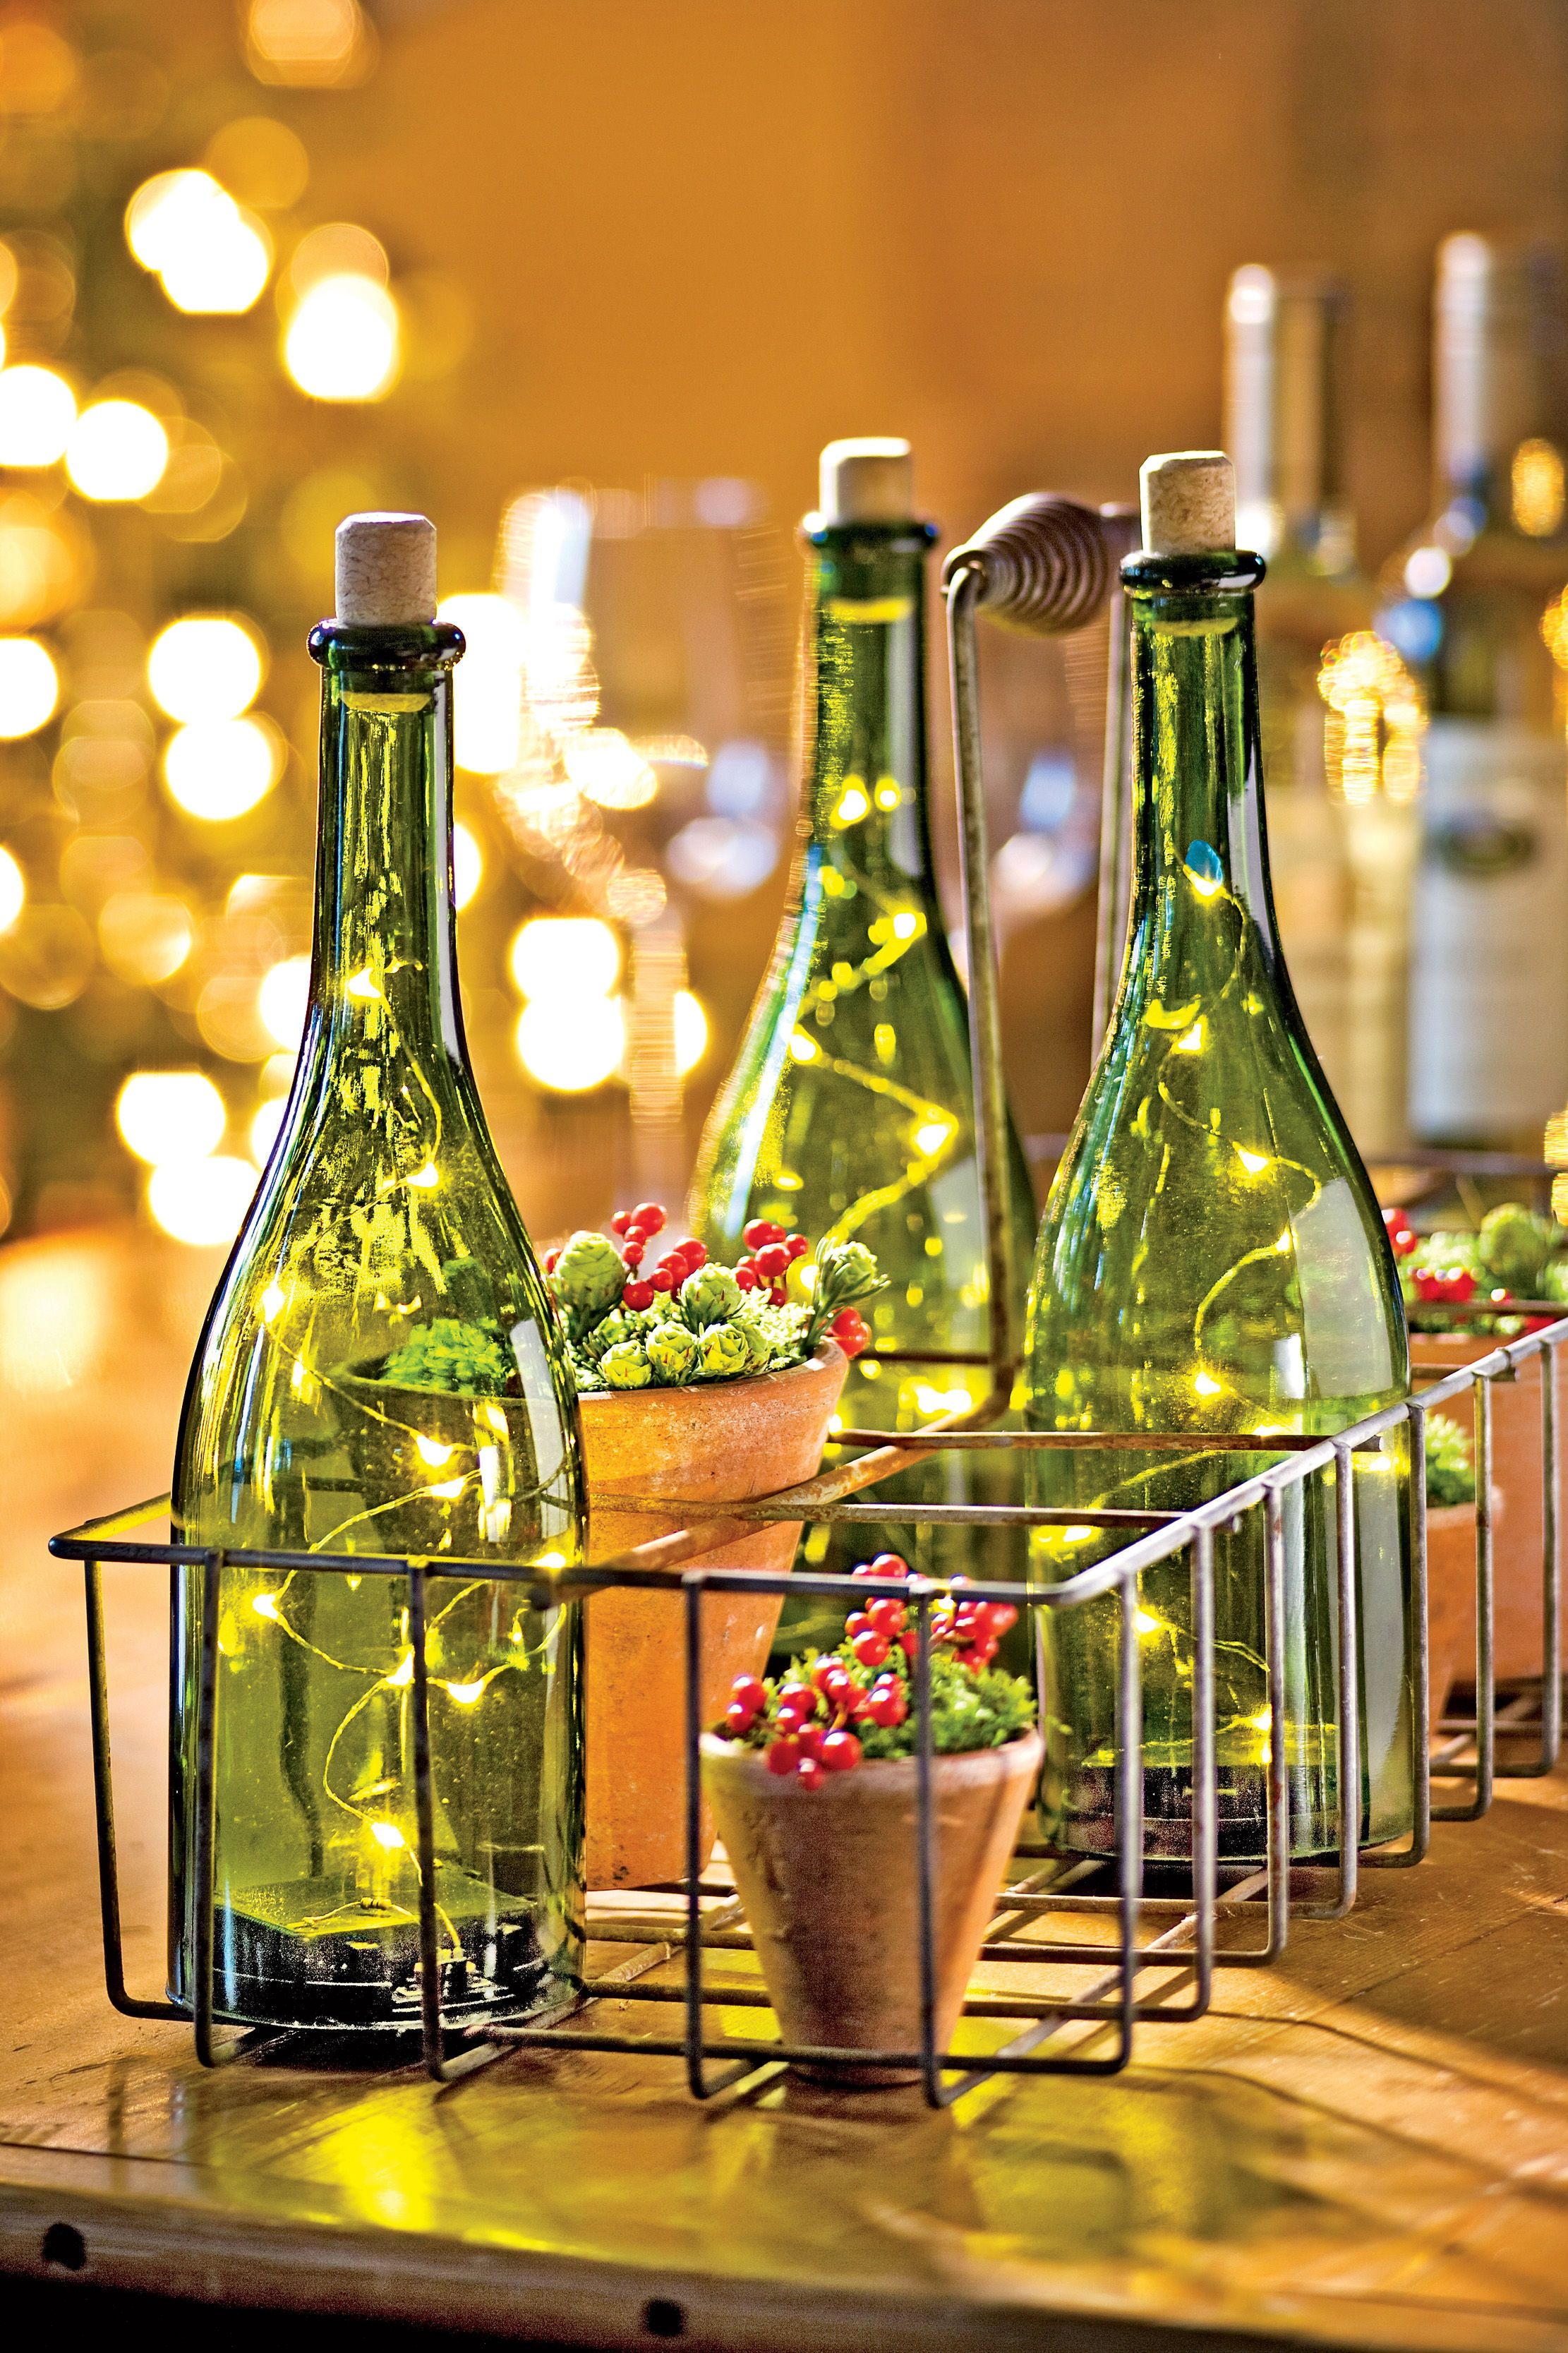 wine bottle light led christmas lights in wine bottle gardenerscom